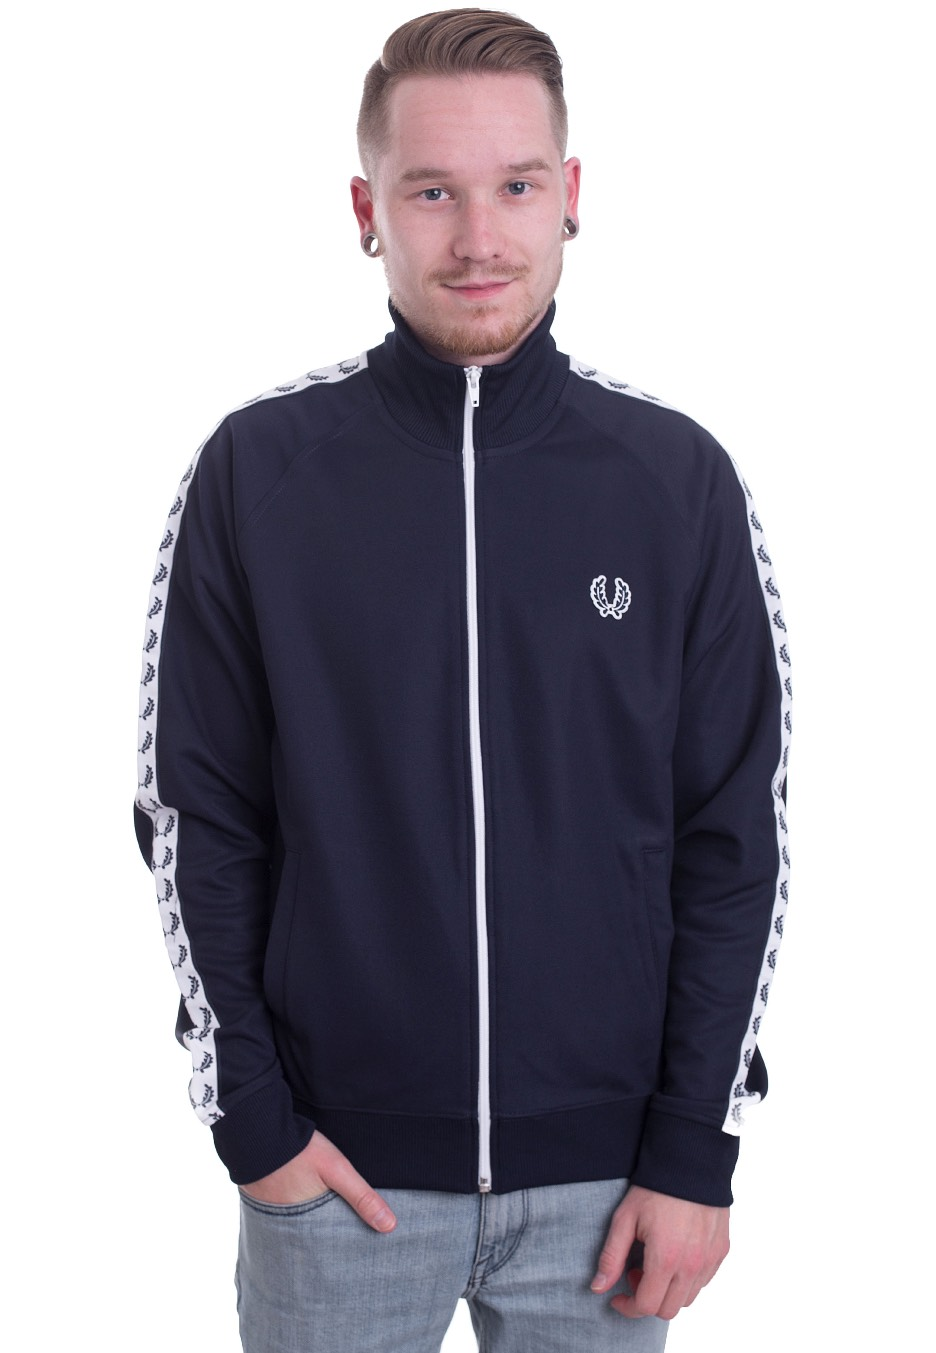 662a89d22 Fred Perry - Laurel Wreath Taped Carbon Blue - Track Jacket - Streetwear  Shop - Impericon.com US